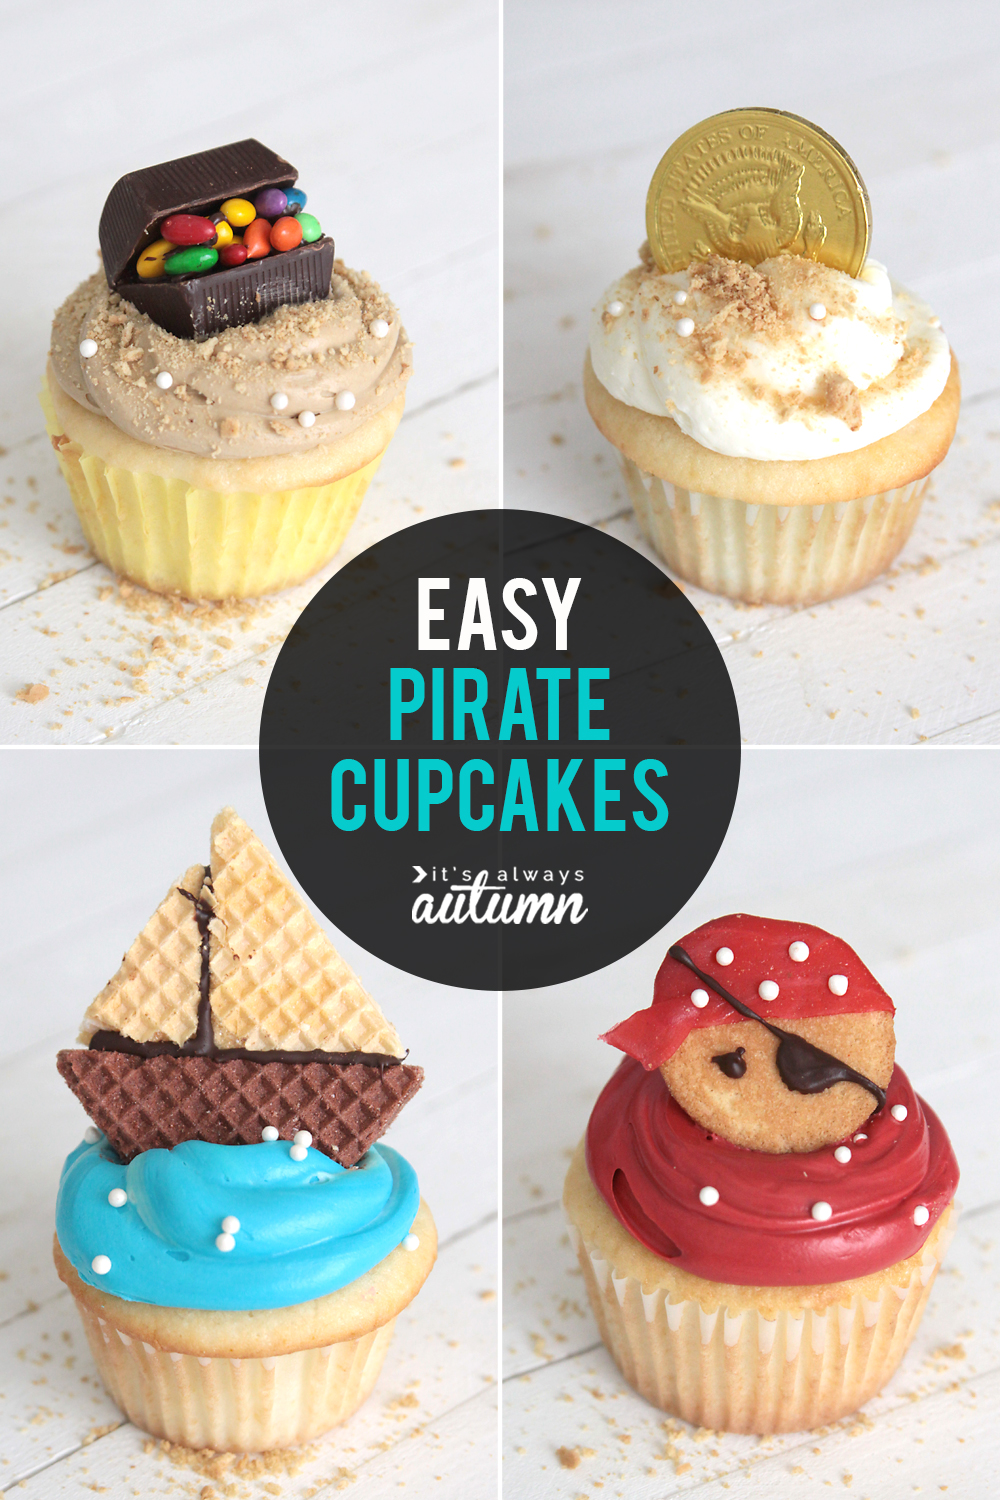 Easy pirate cupcakes! Learn how to make a treasure chest cupcake, pirate ship cupcake, gold dubloon cupcake, and pirate cupcake, all with real frosting (no fondant).